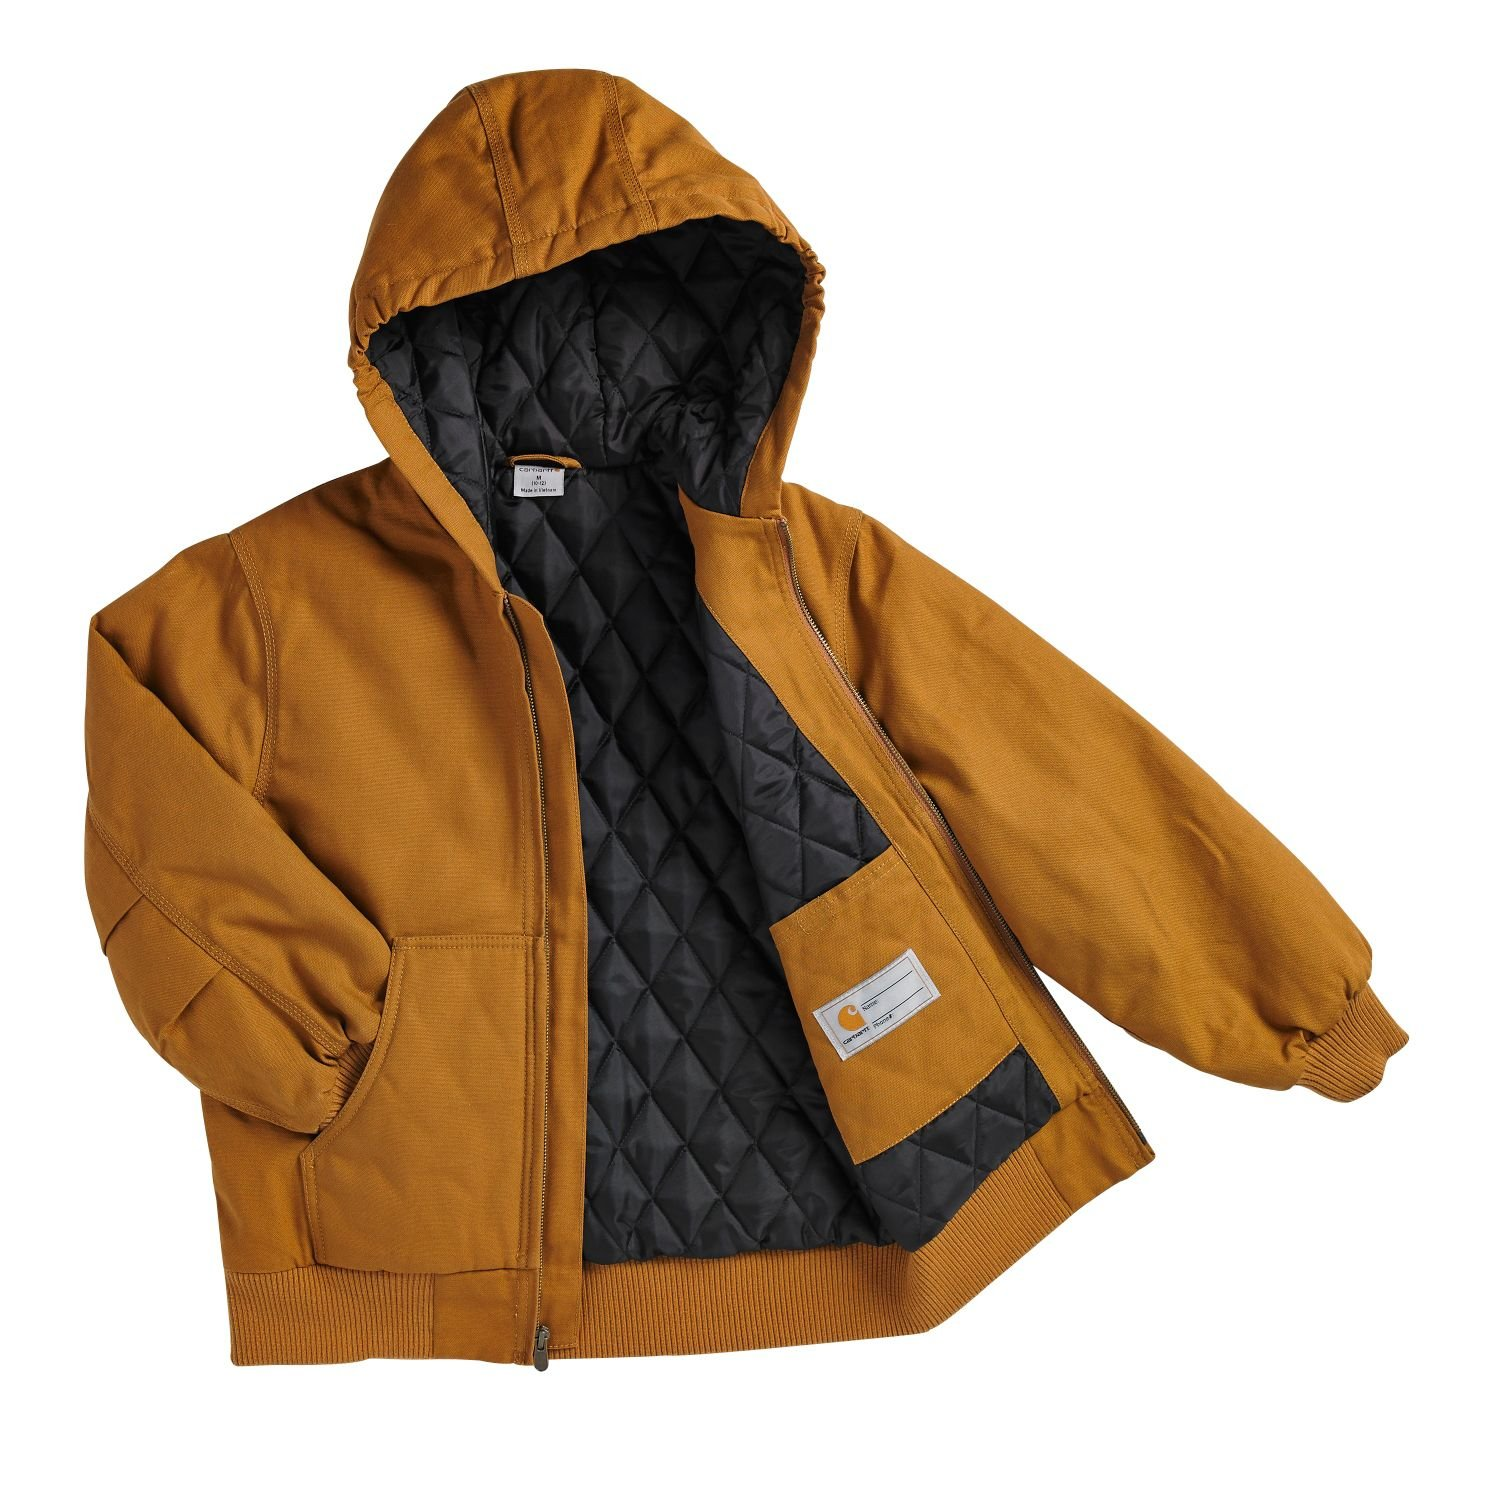 Carhartt Brown Carhartt Little Boys Work Active Jacket X-Small//6 LT Apparel Parent Code CP8489BRN-XSMREG